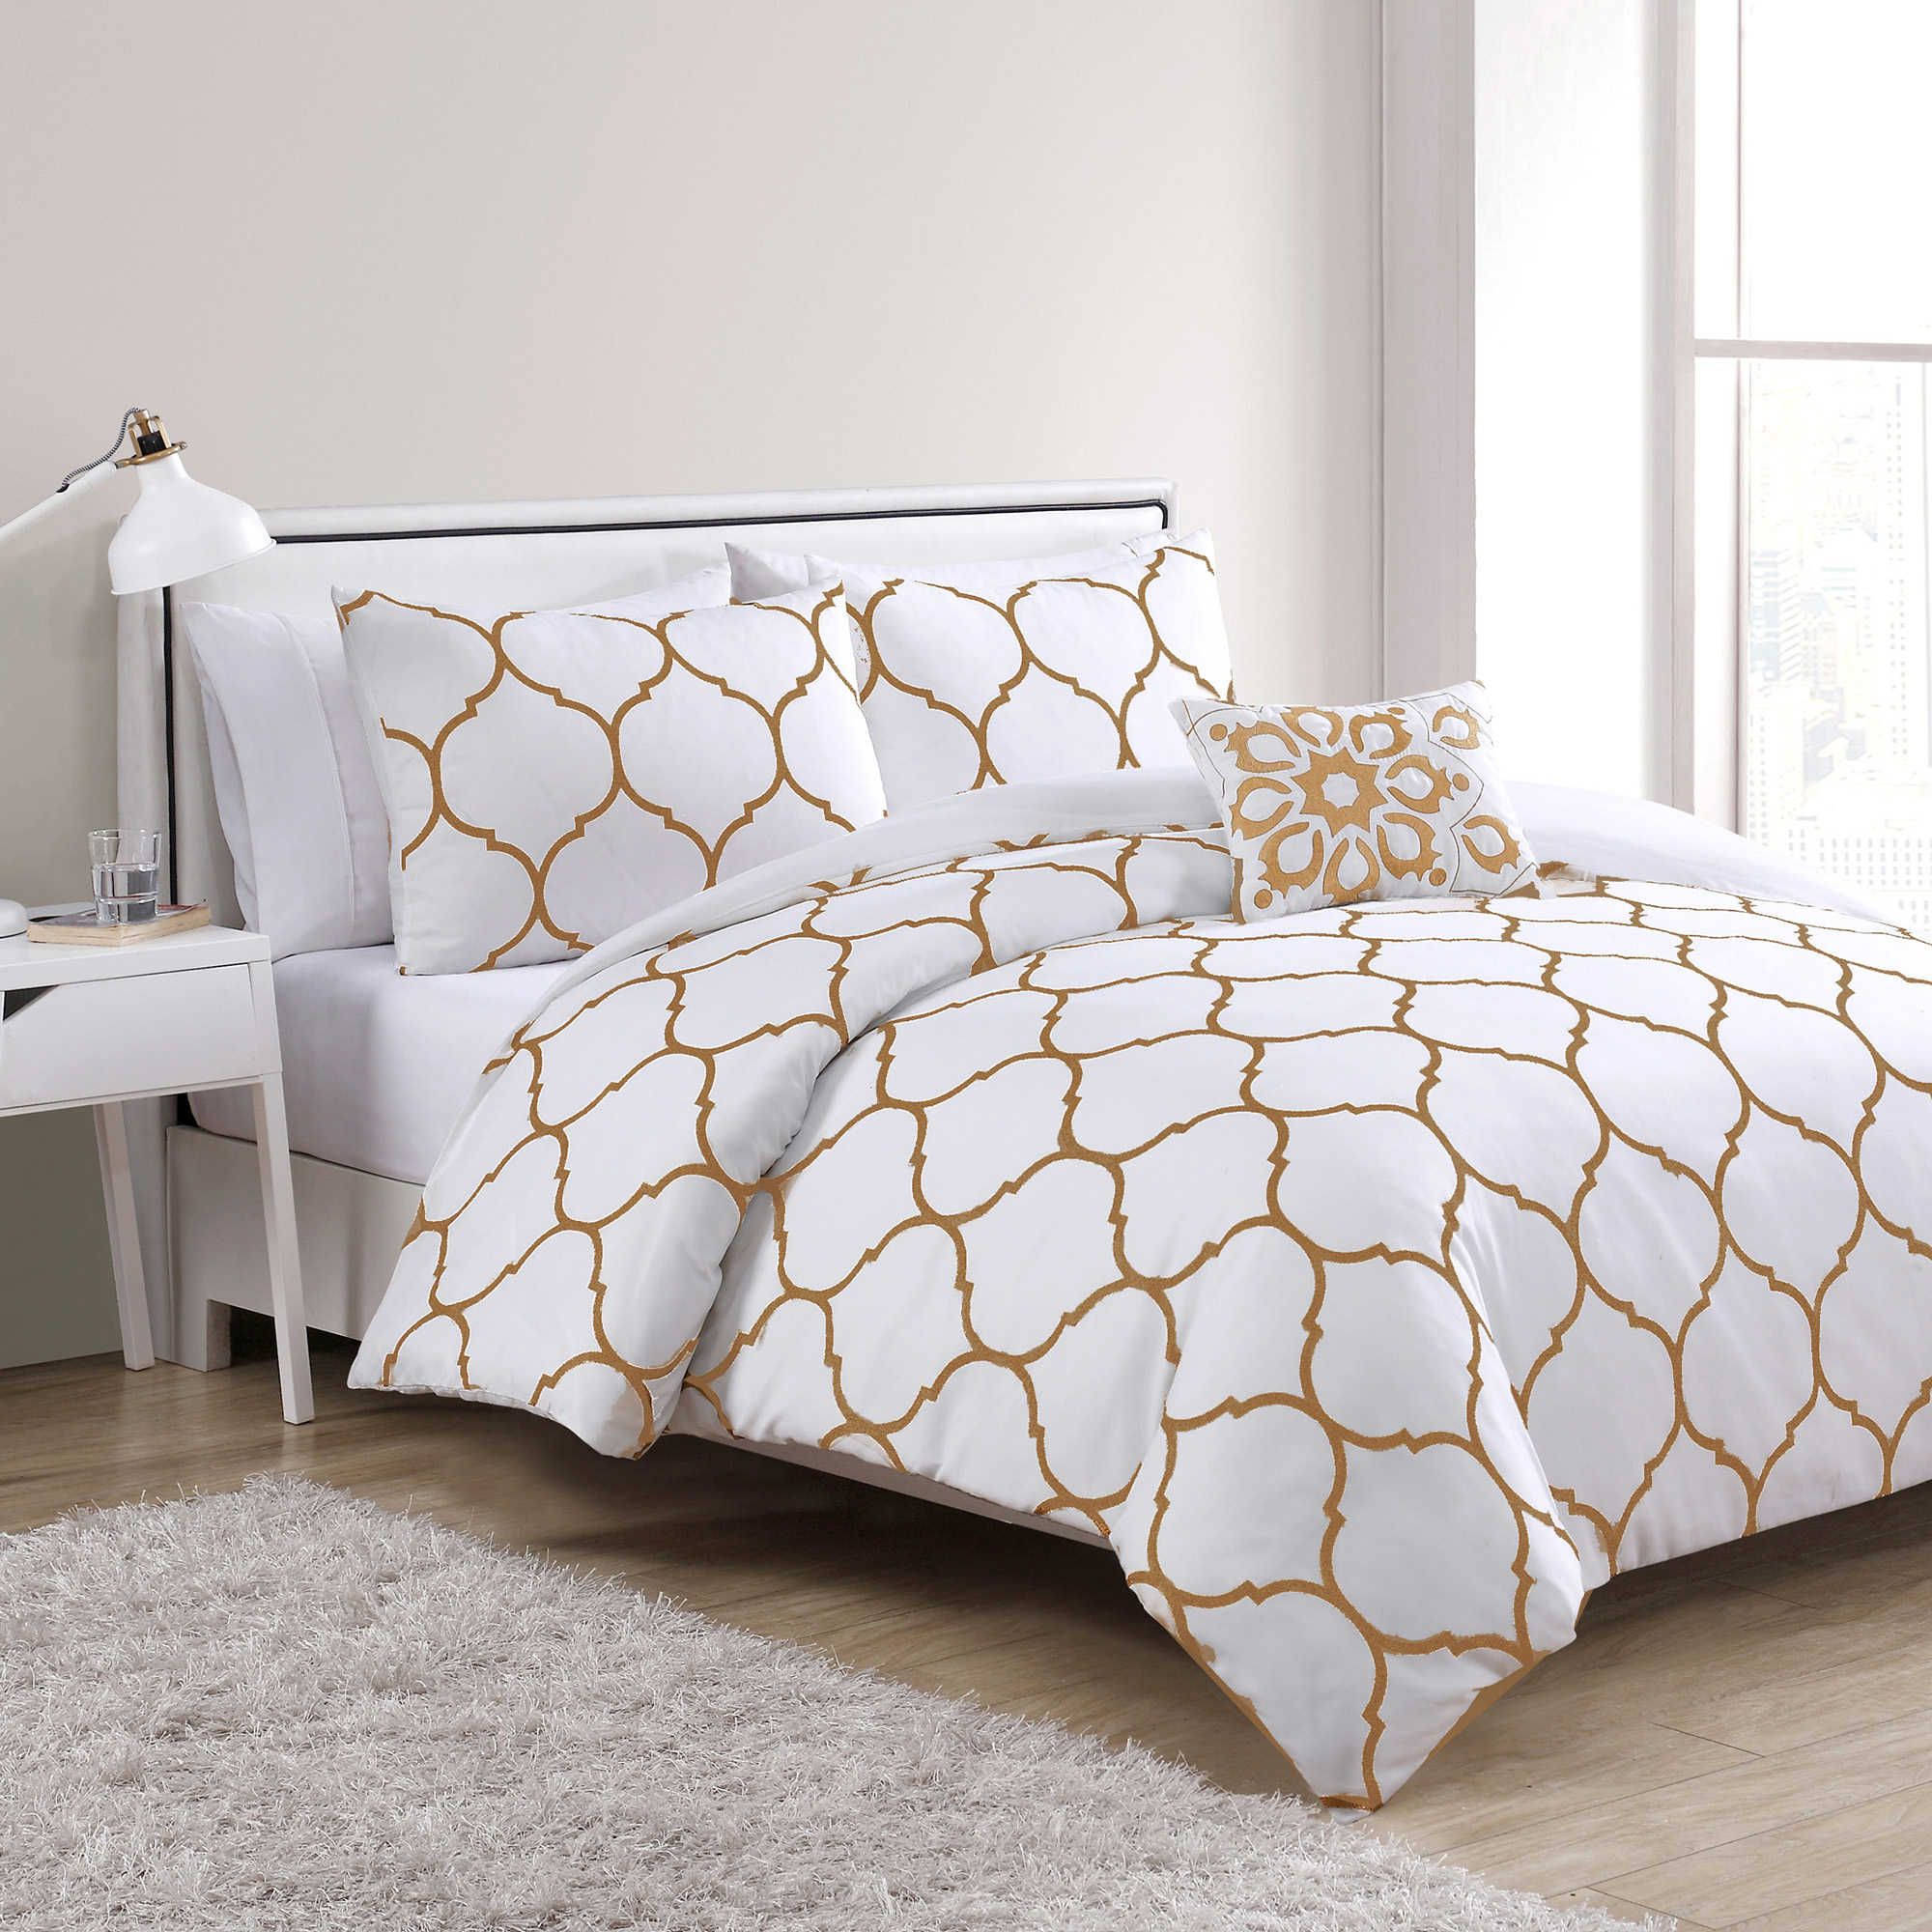 Duvet And Comforter Sets Vcny Ogee 4 Piece Full Queen Comforter Set In Gold White